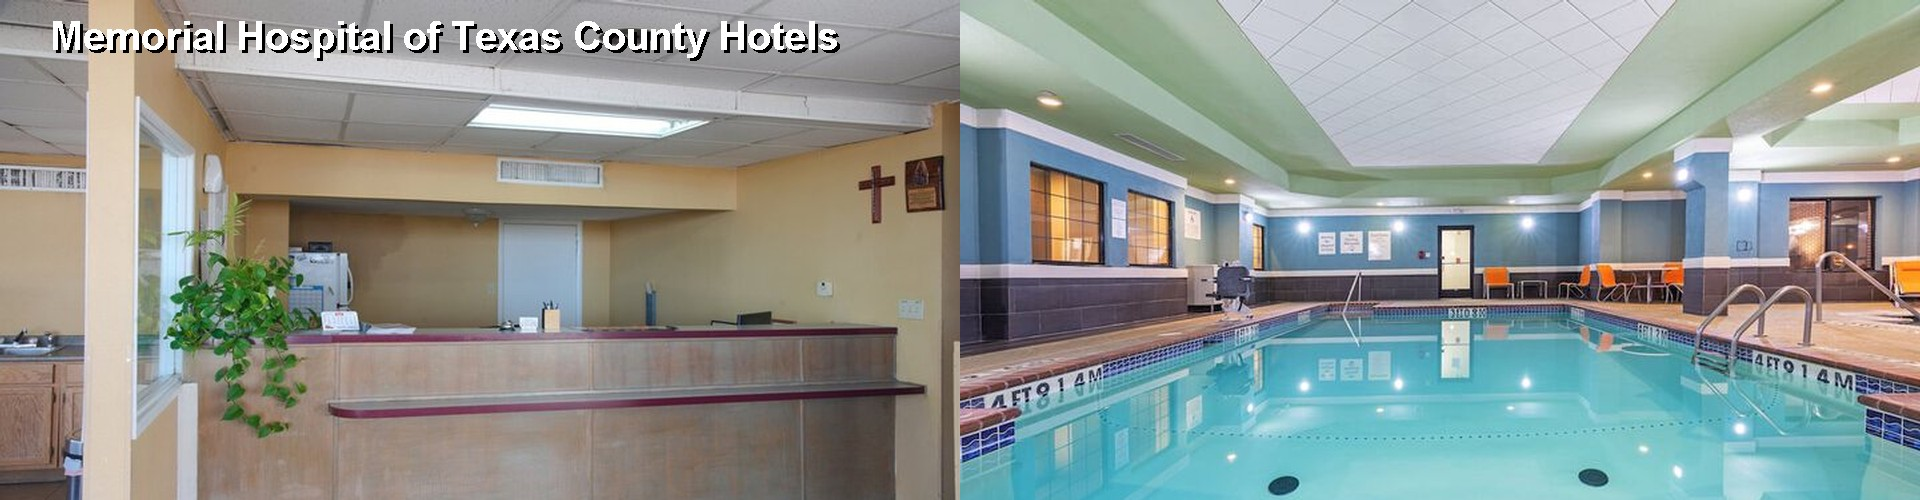 4 Best Hotels near Memorial Hospital of Texas County